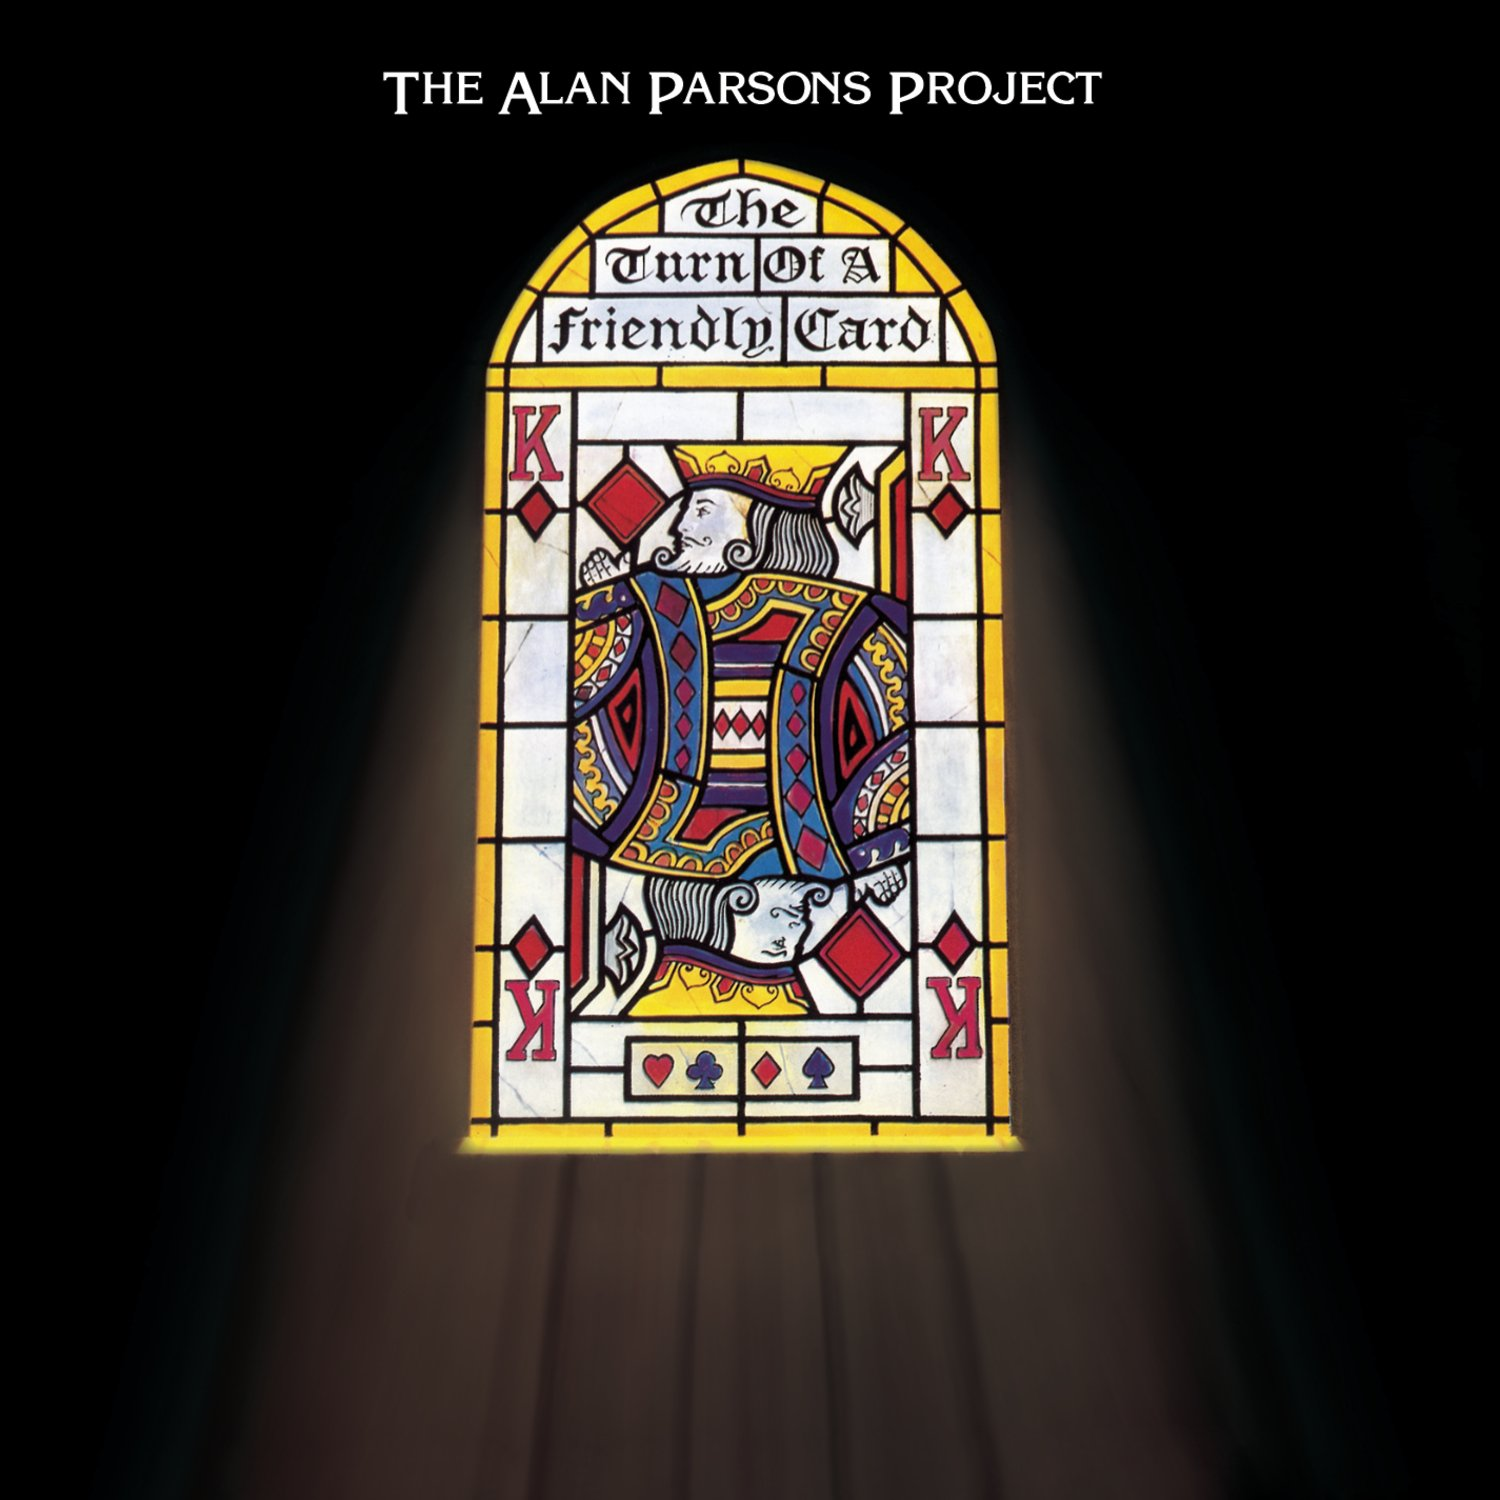 Risultati immagini per the alan parsons project the turn of a friendly card